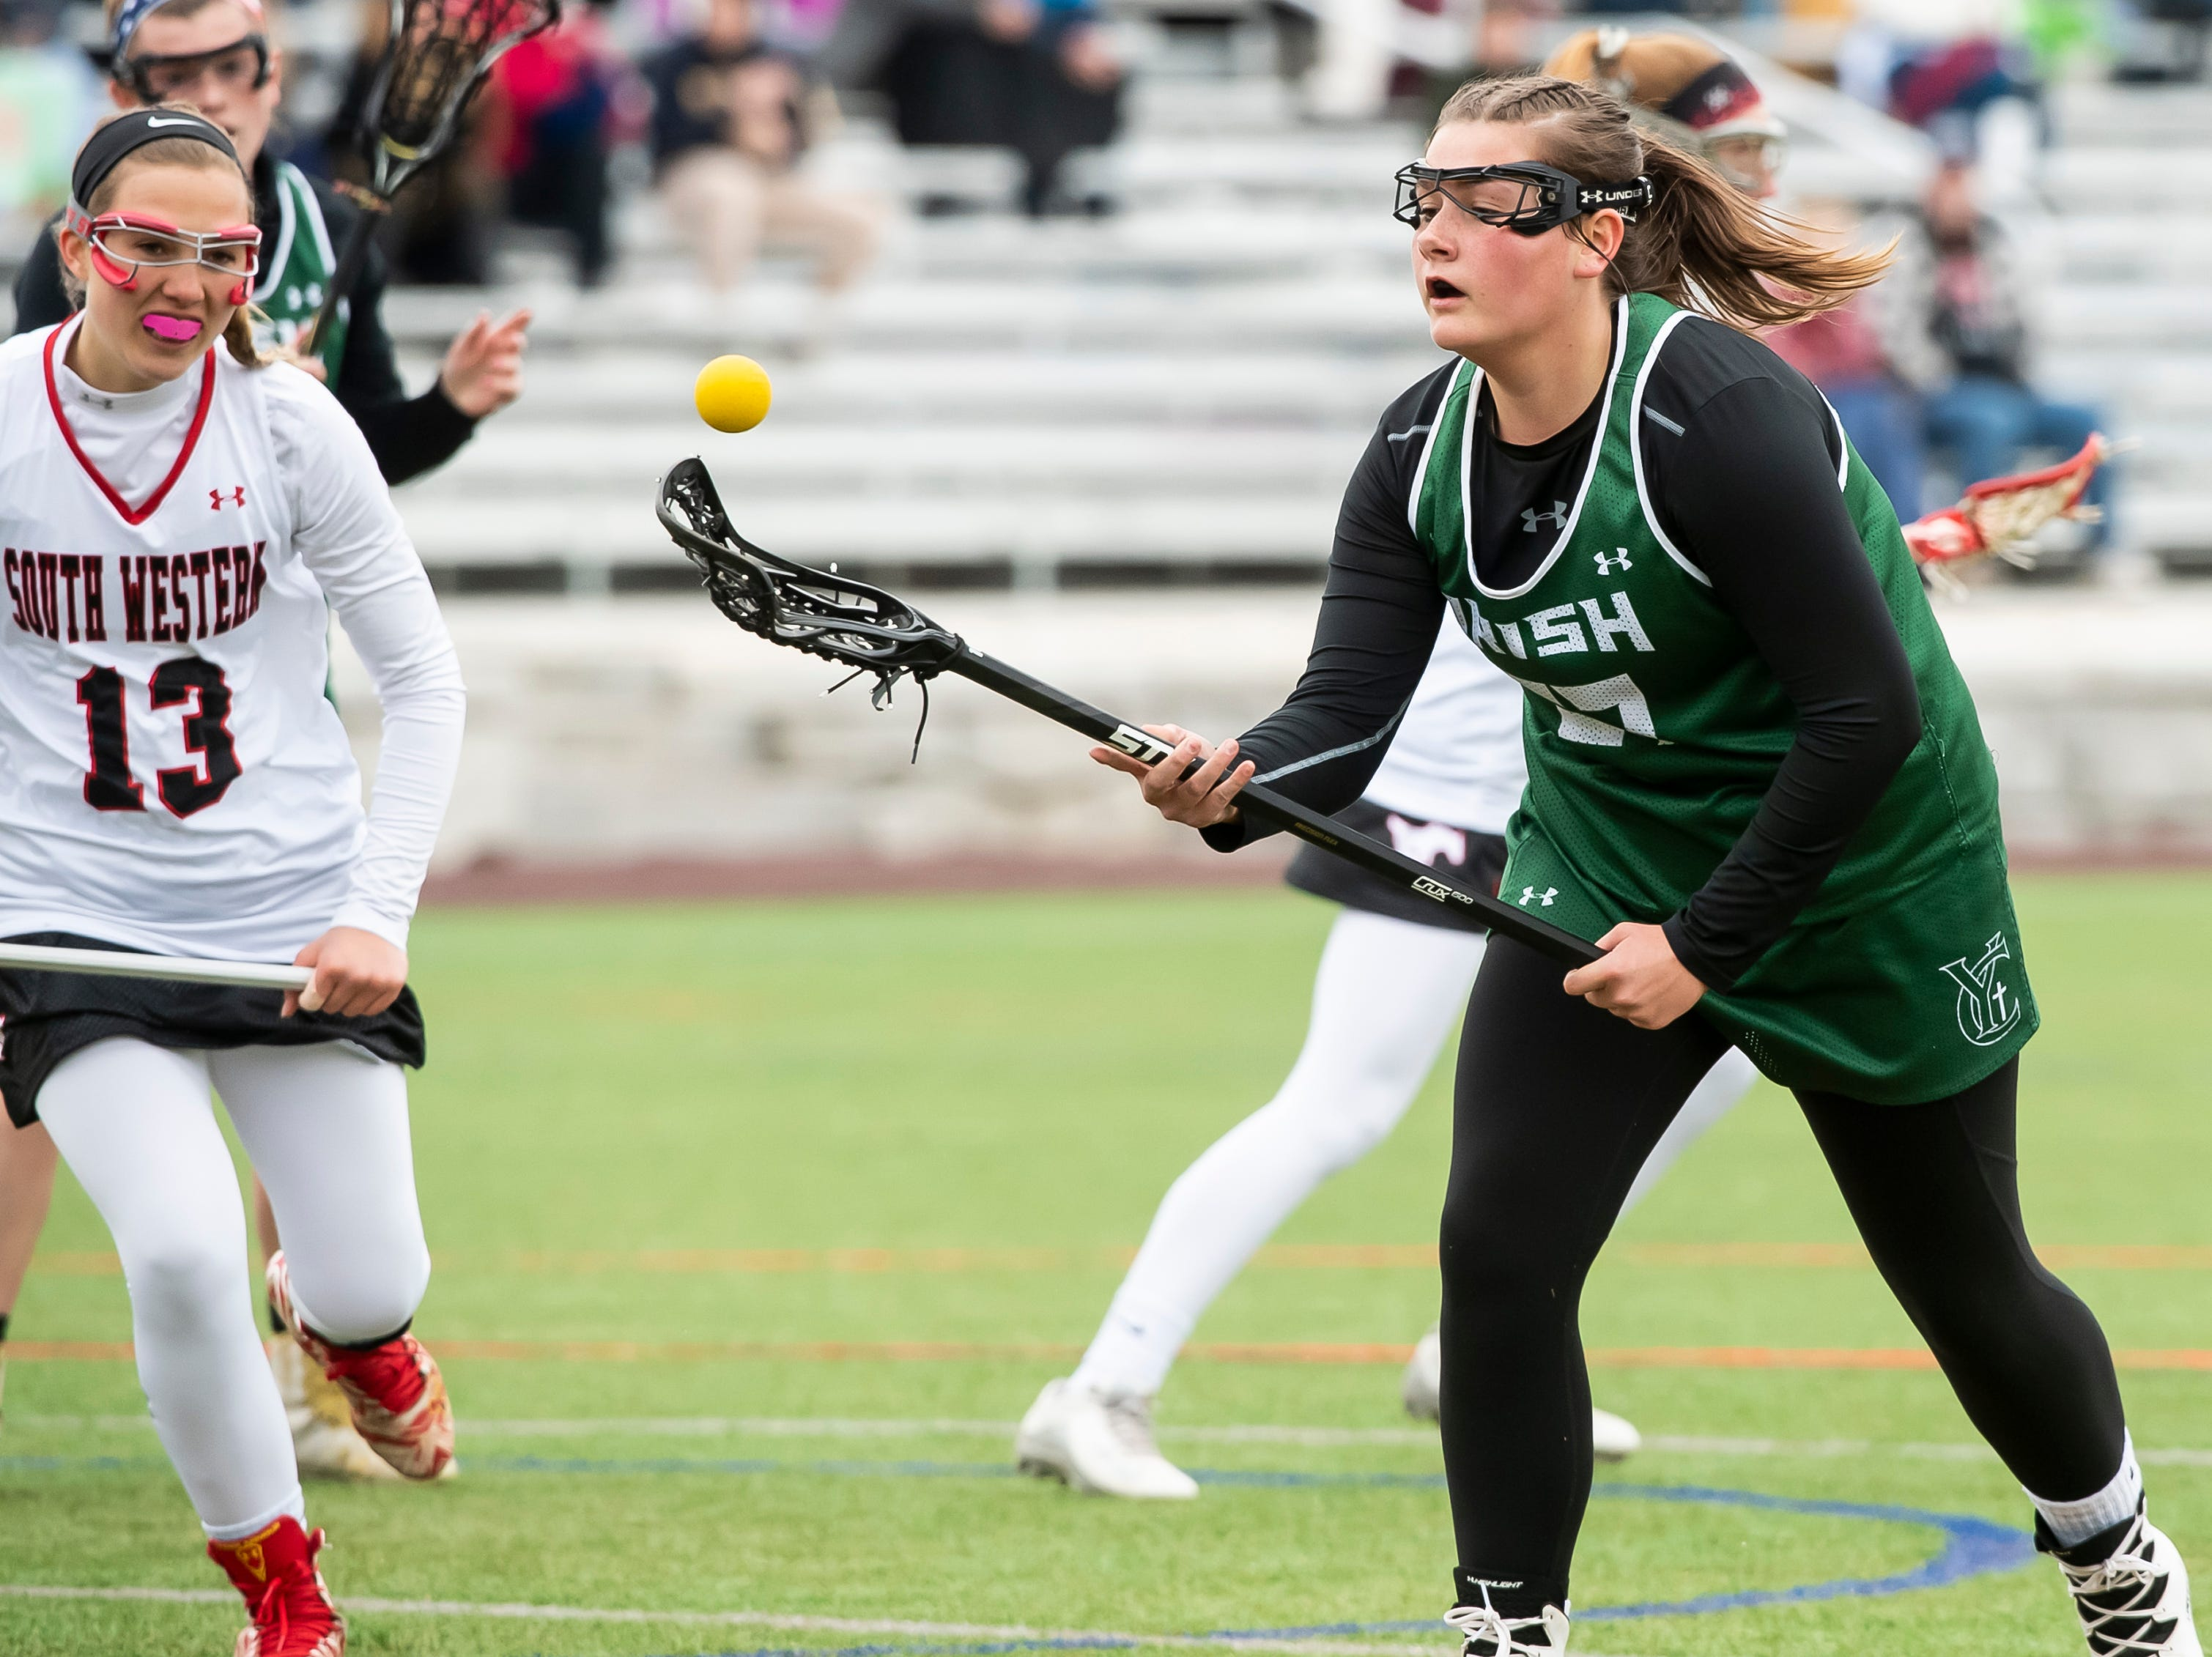 York Catholic's Ella Linthicum regains control of the ball during a YAIAA lacrosse game against South Western in Hanover on Tuesday, April 2, 2019. Linthicum finished with three goals and one assist as York Catholic won 19-7 and improved to 5-0.